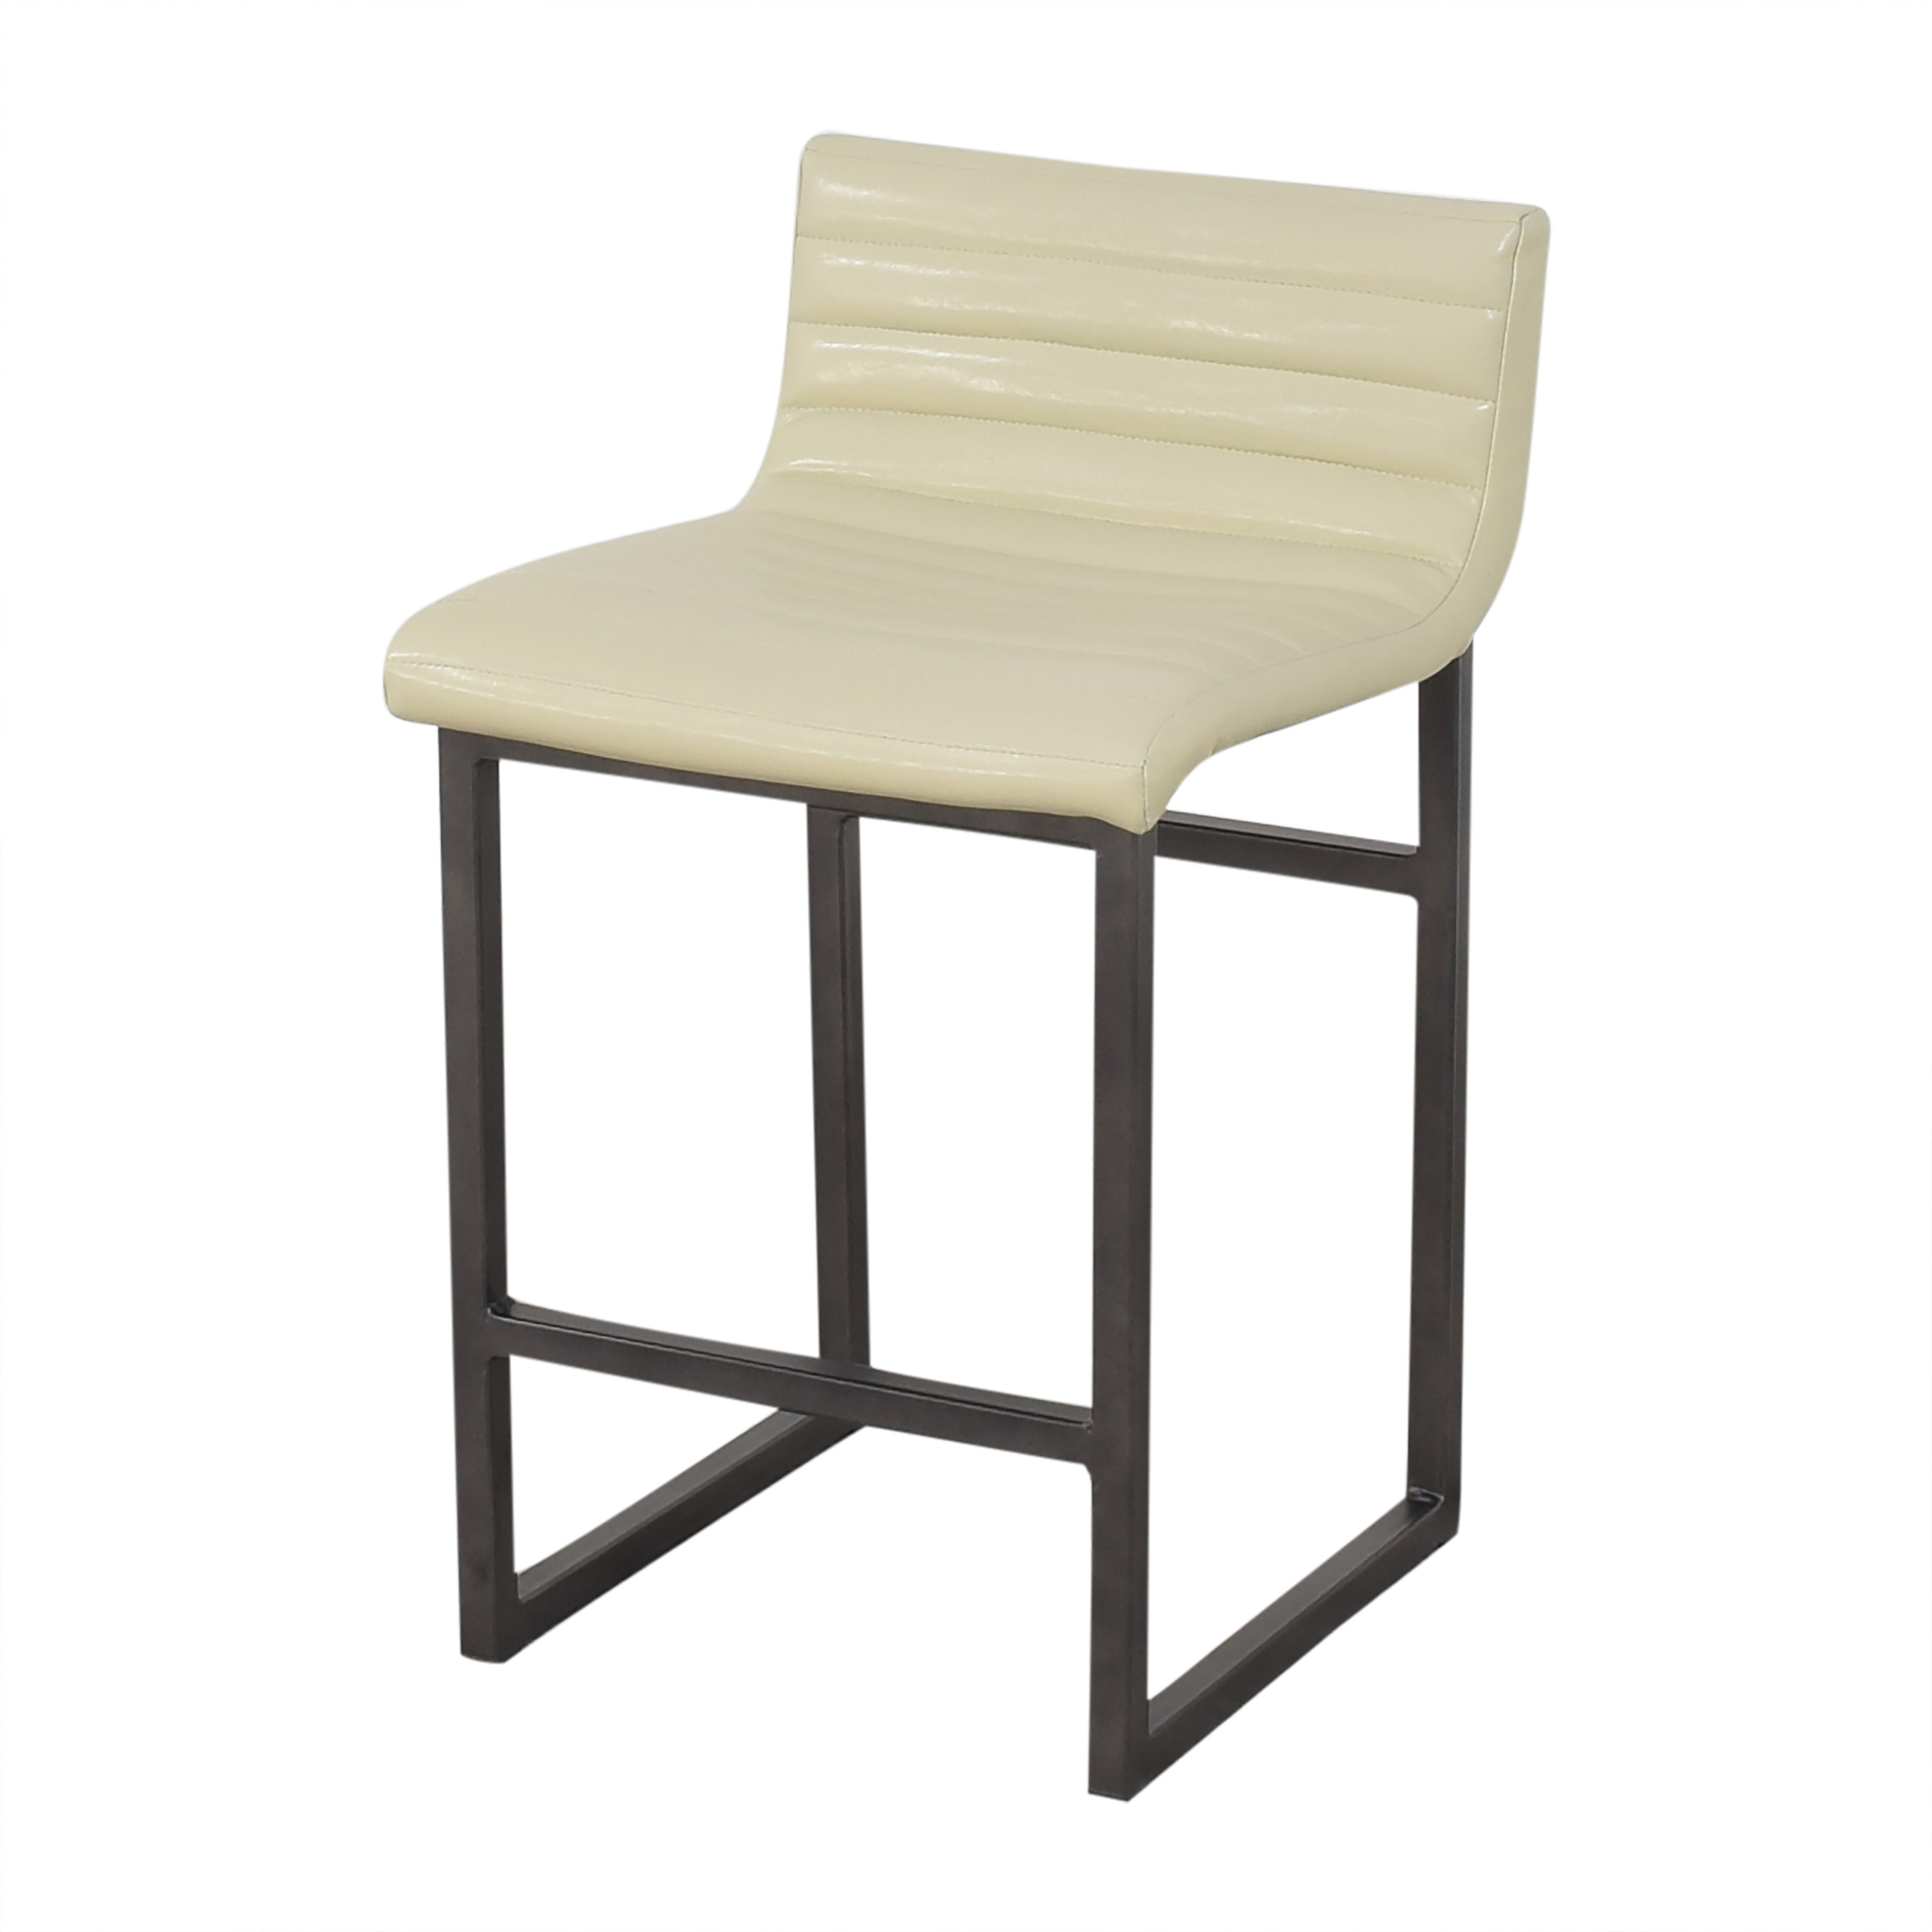 buy Dimensions Dimensions Furniture Counter Stools online